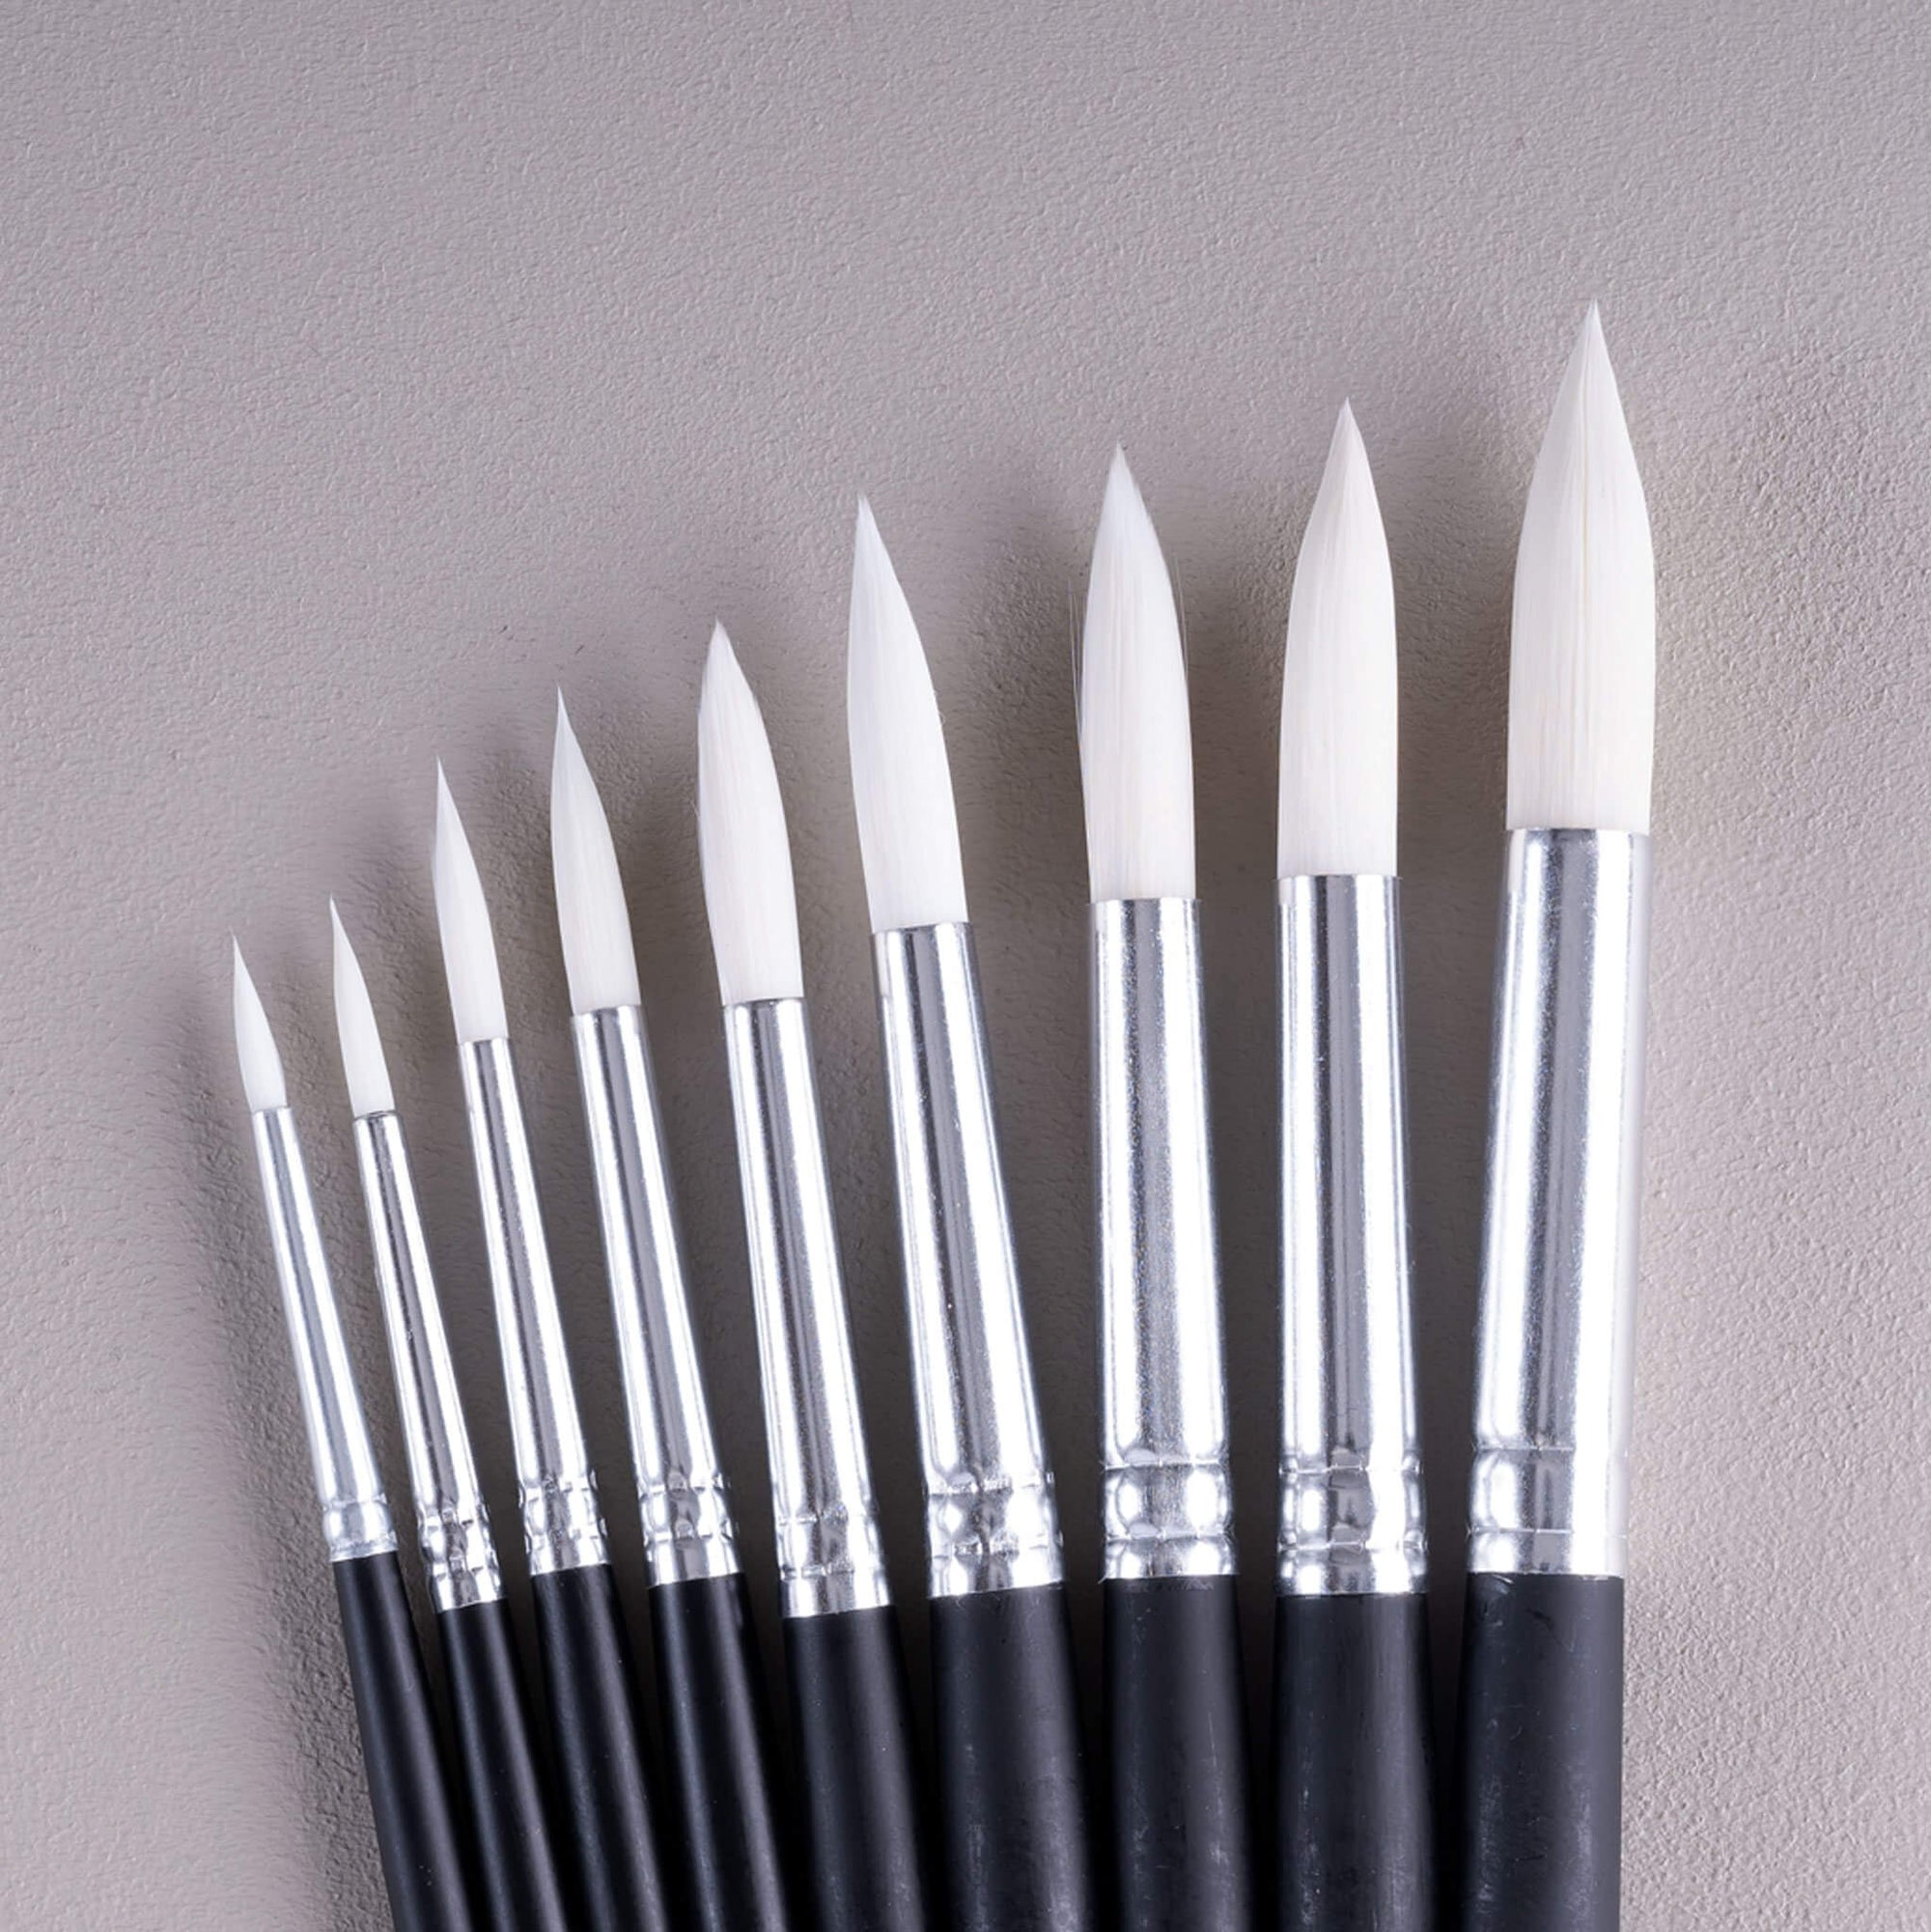 ARTdiscount School Brushes - Packs of 10 - Round